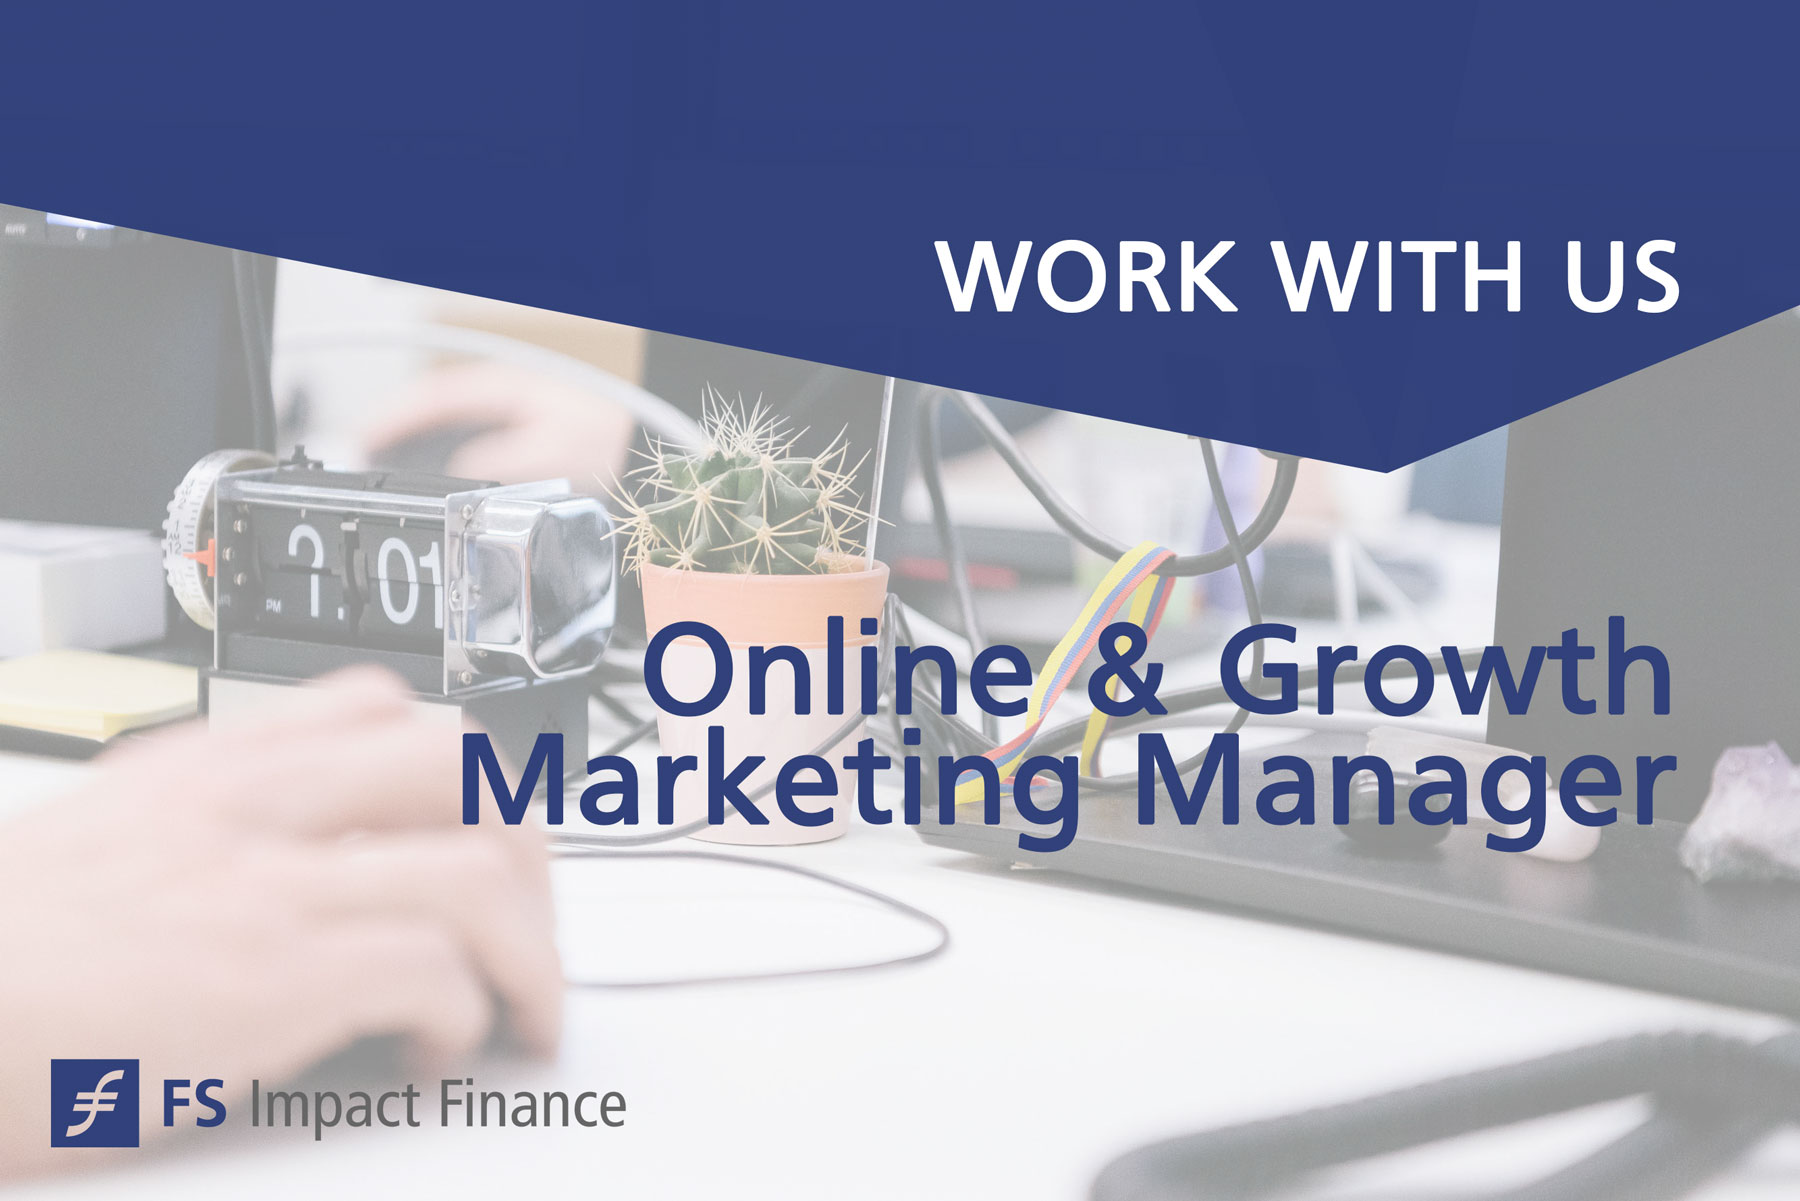 Online & Growth Marketing Manager